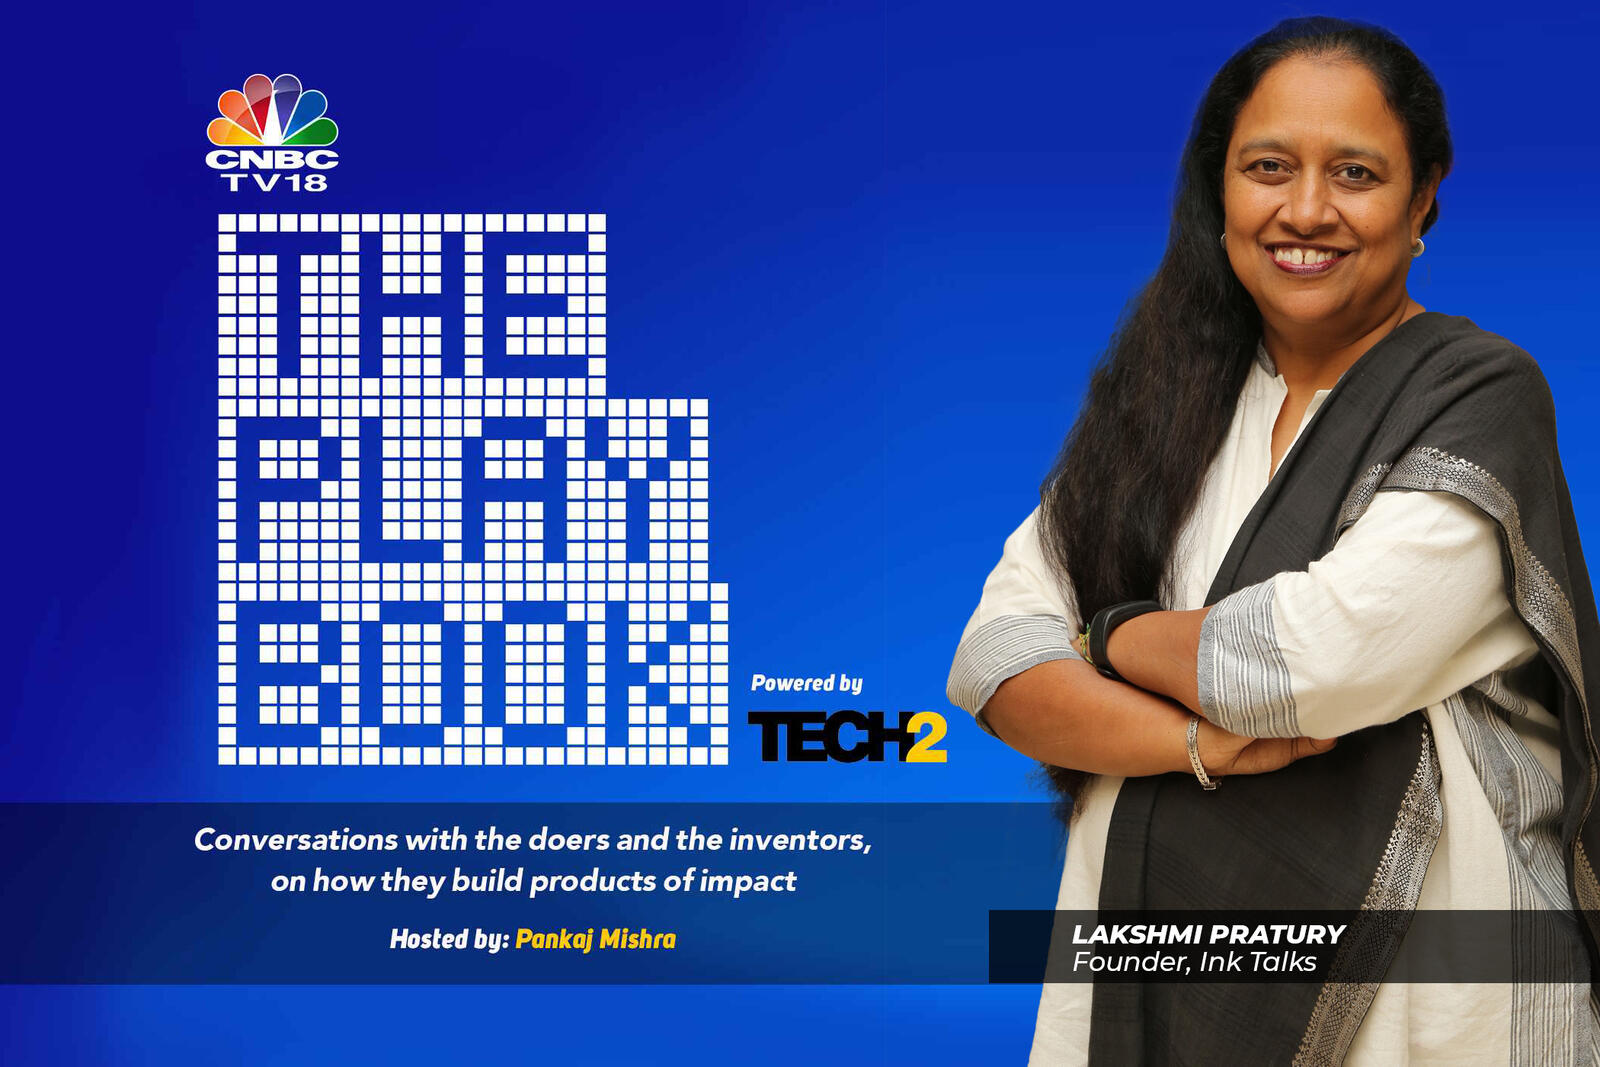 5: The Playbook: Lakshmi Pratury on lessons from TED and INK Talks in building communities